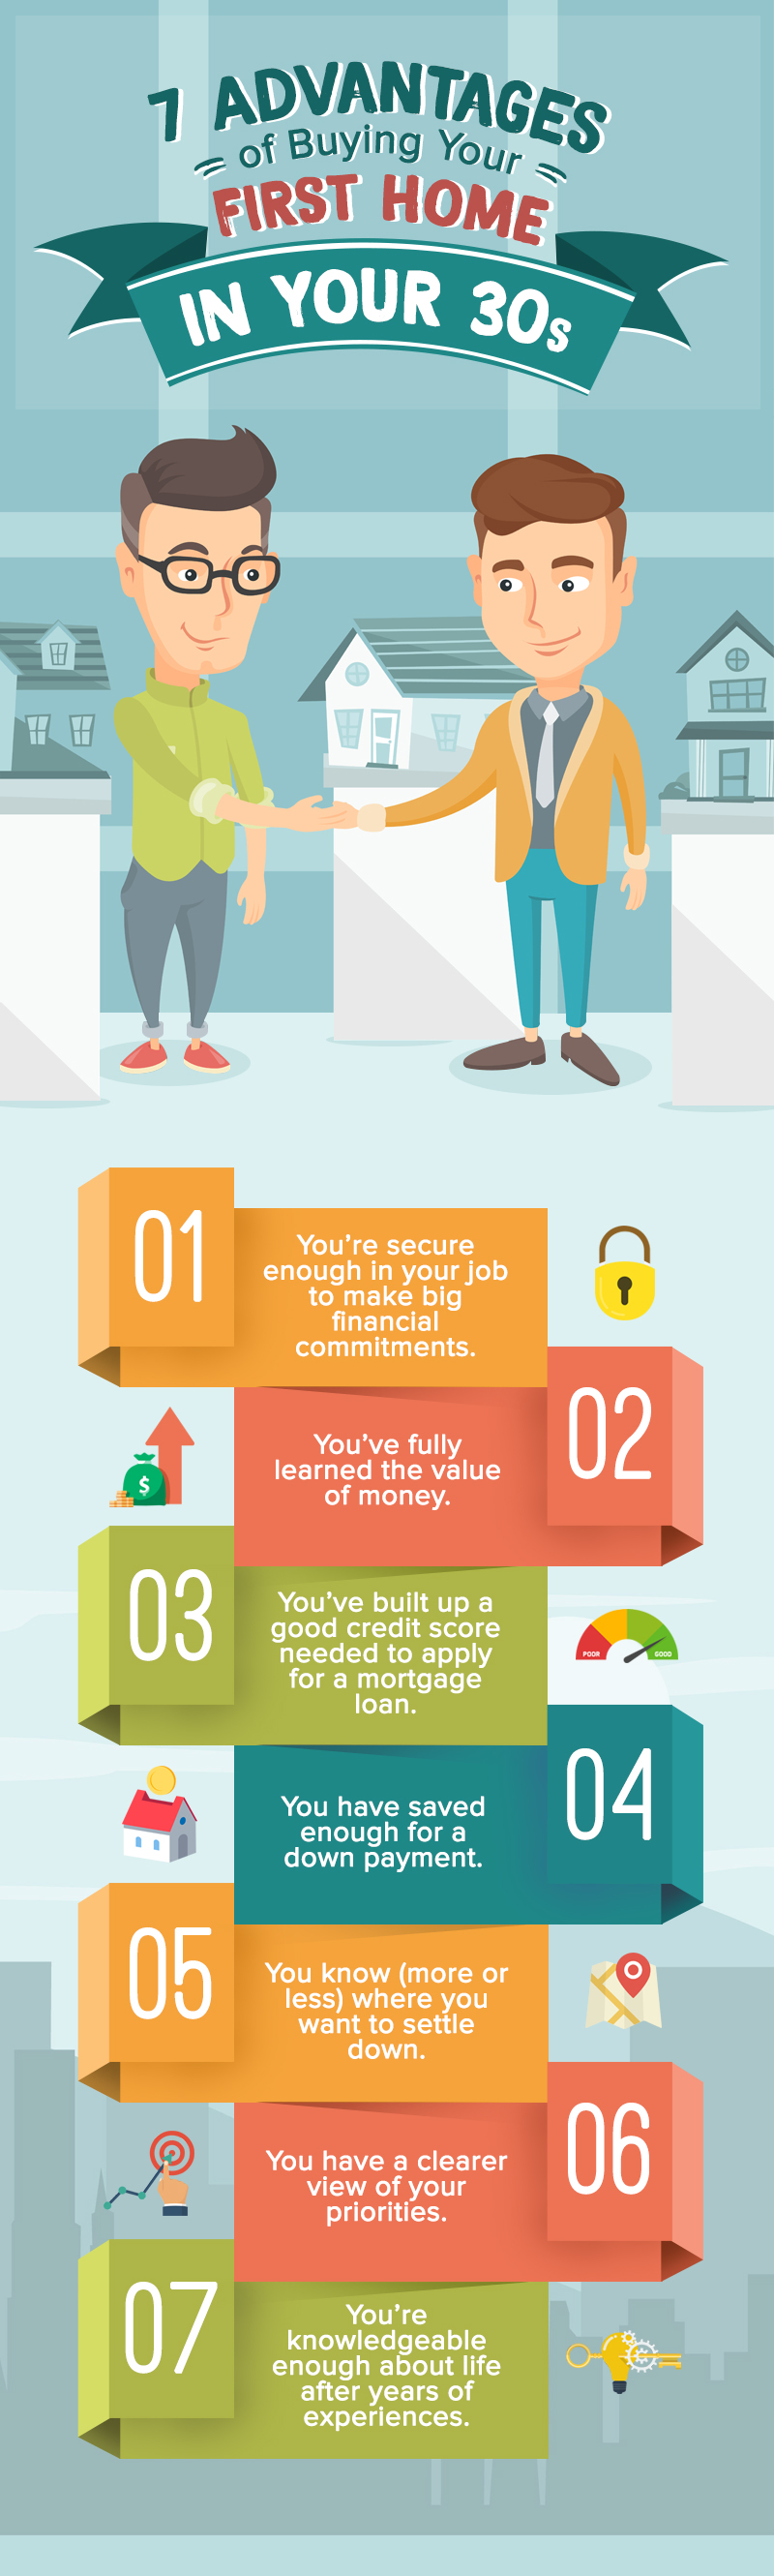 7 Advantages Of Buying Your First Home in Your 30s.jpg